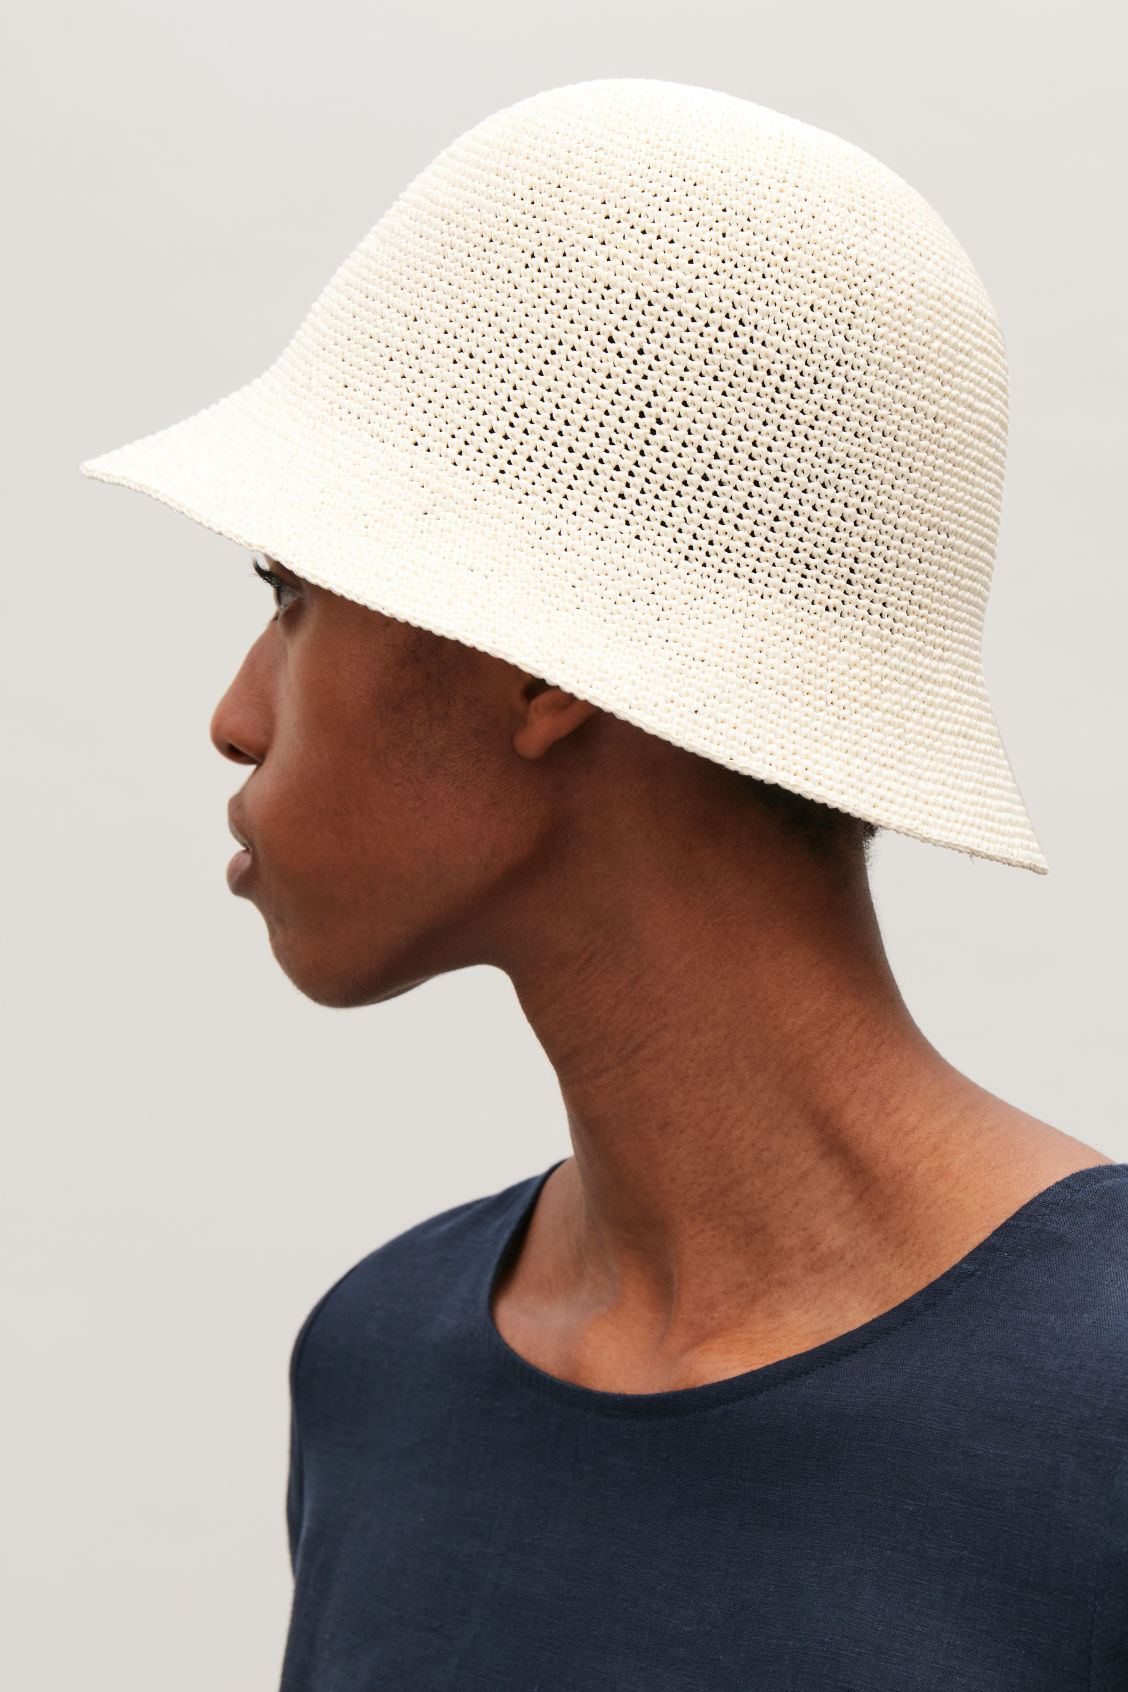 Protect your nape with a cute bucket hat. - Cos, £29